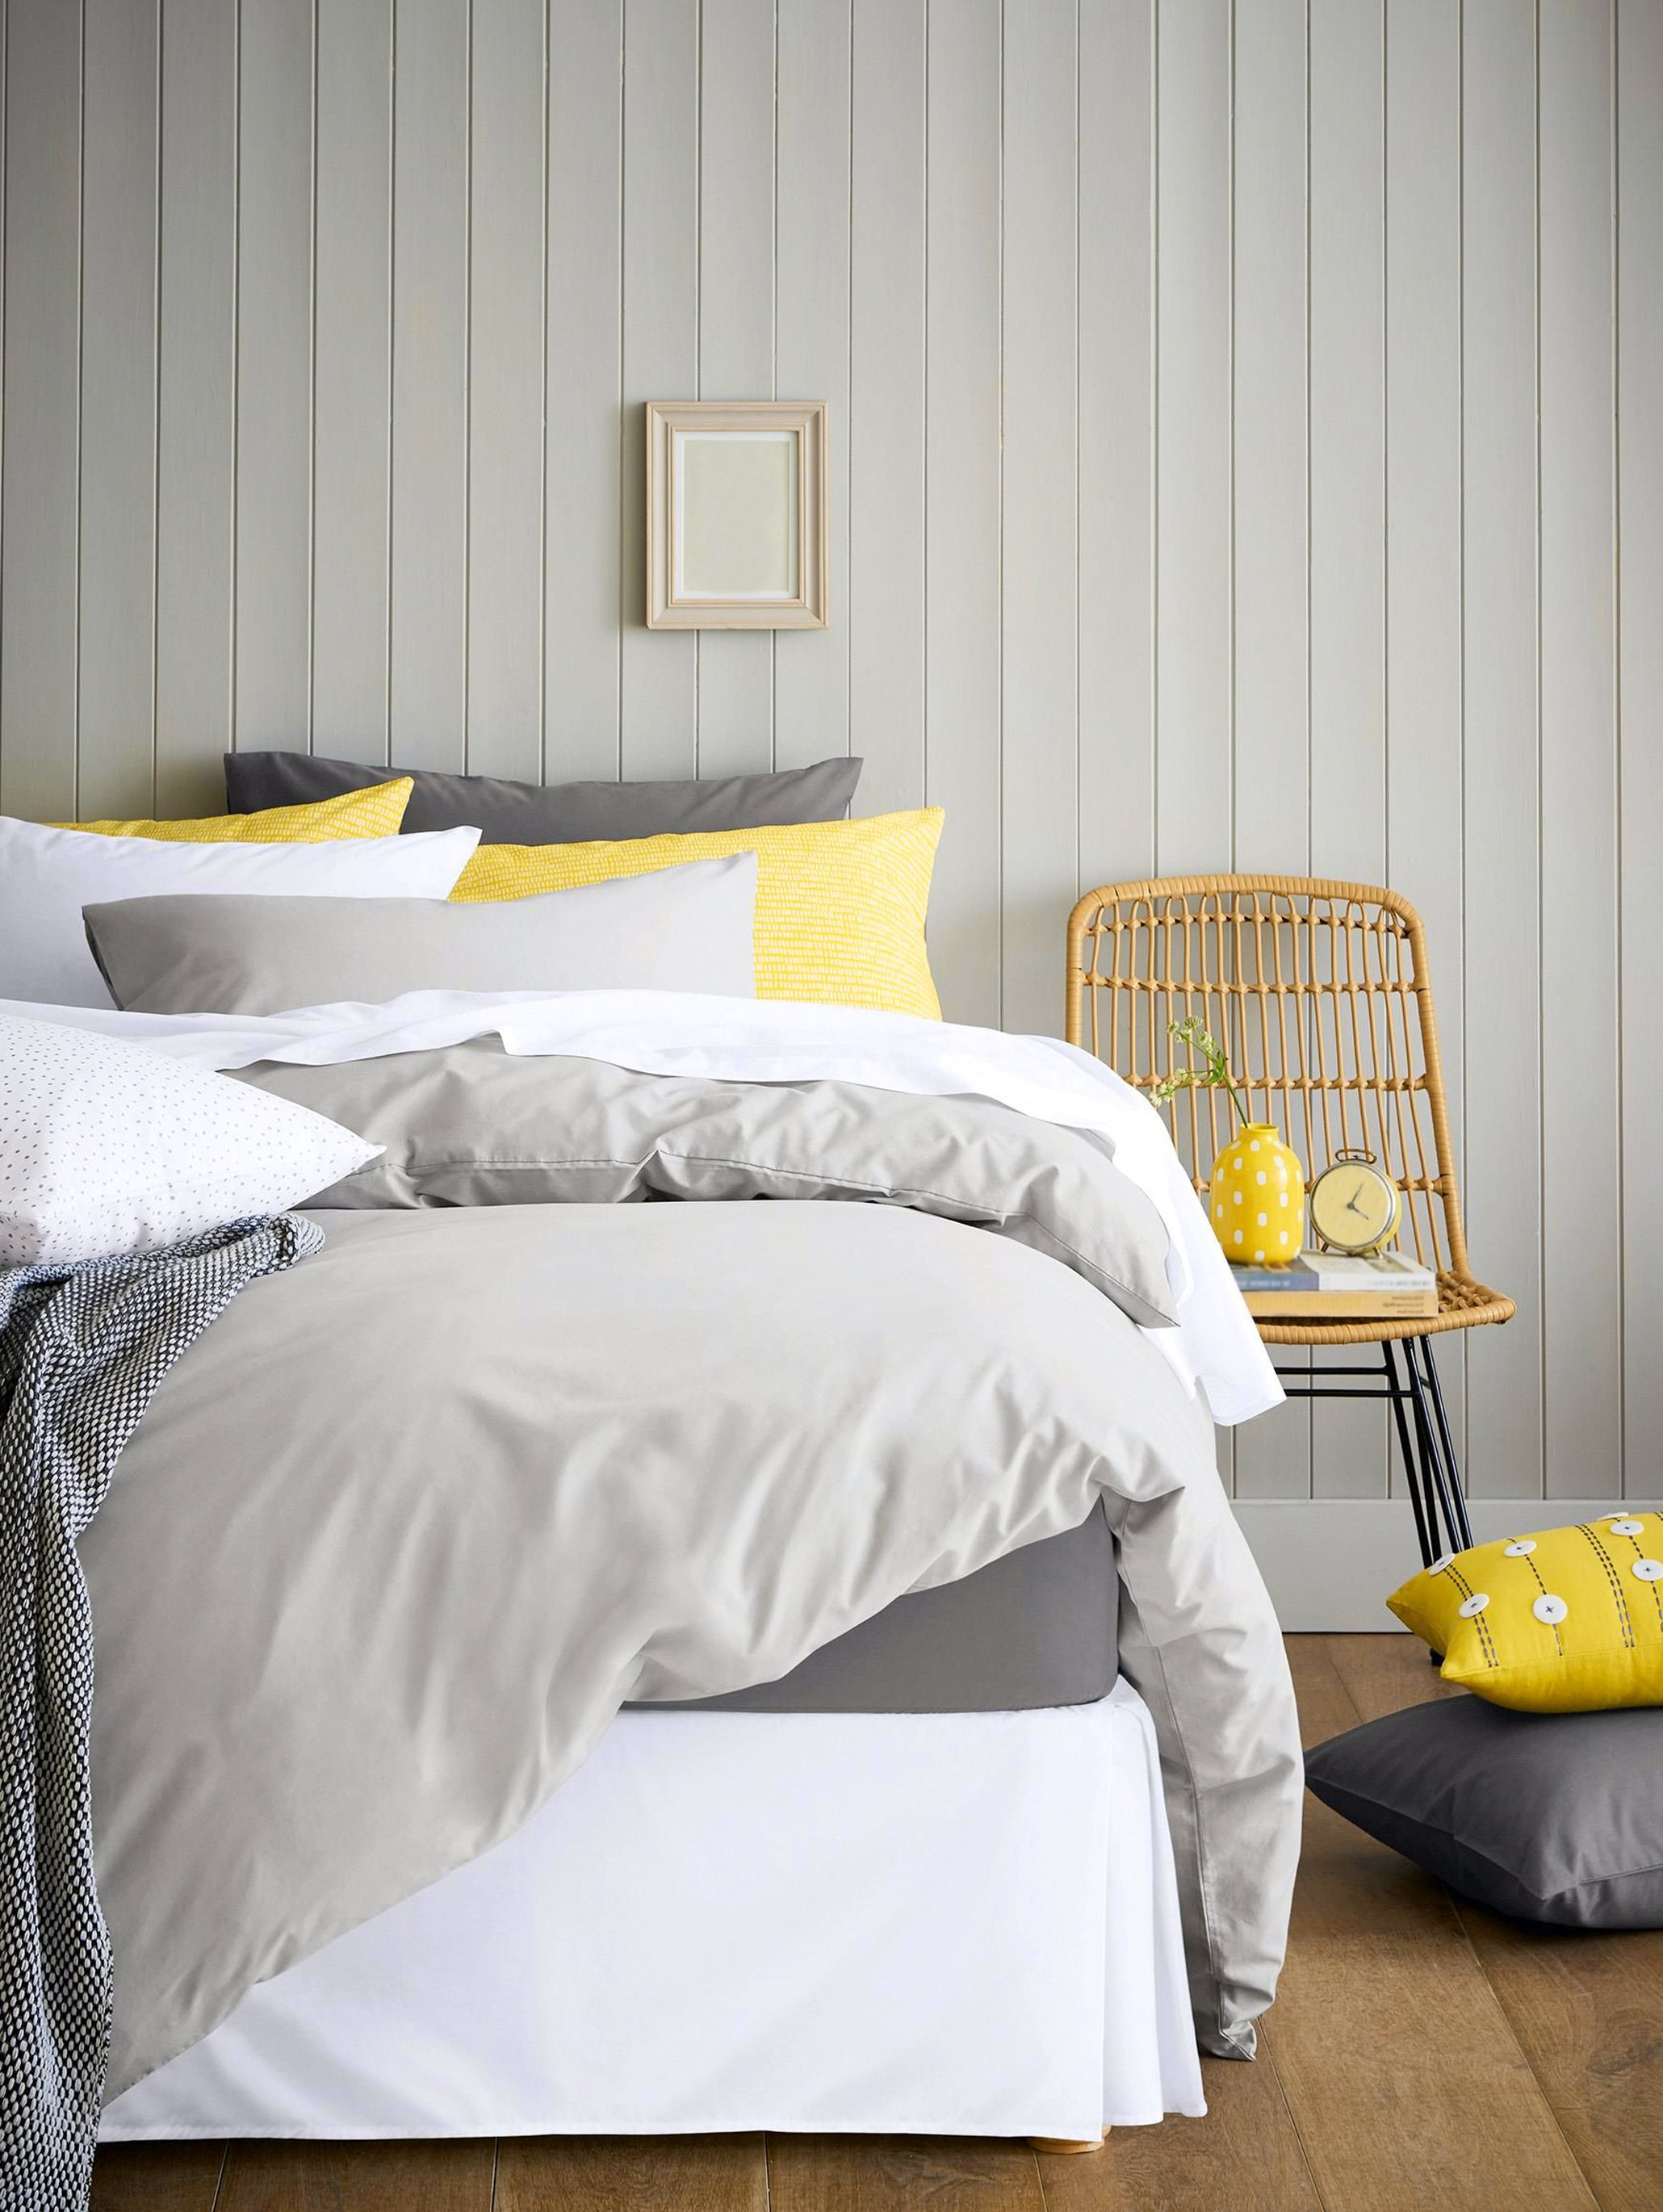 Bed with a grey comforter and white, grey, and yellow pillows.